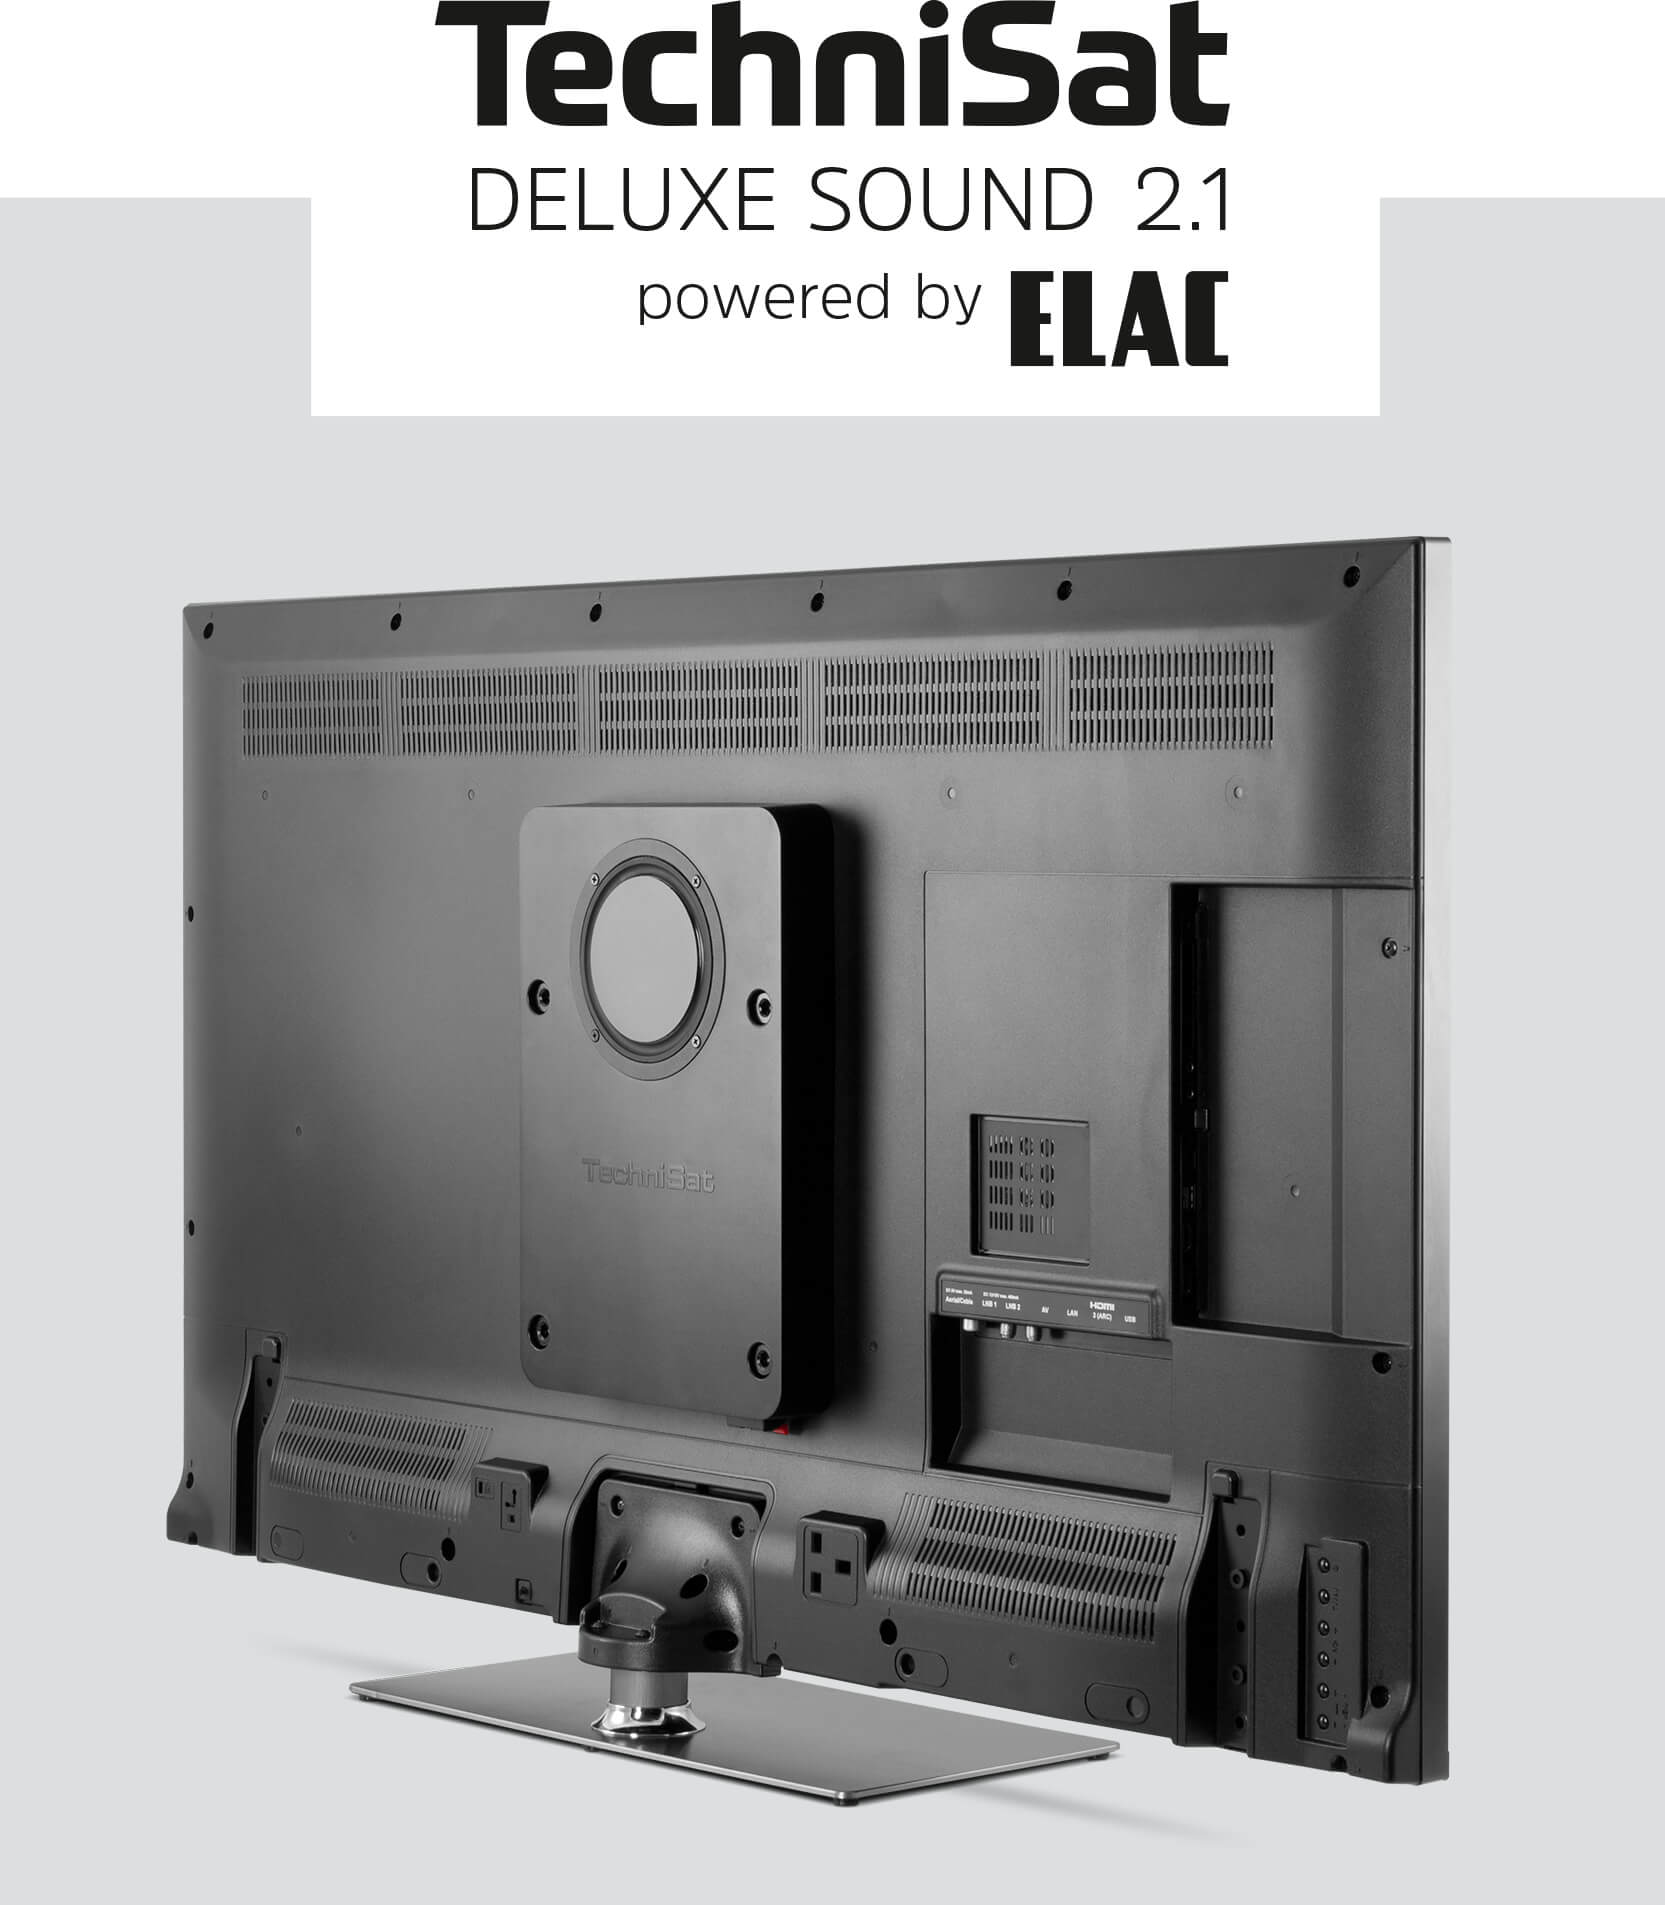 TechniSat DELUXE SOUND 2.1